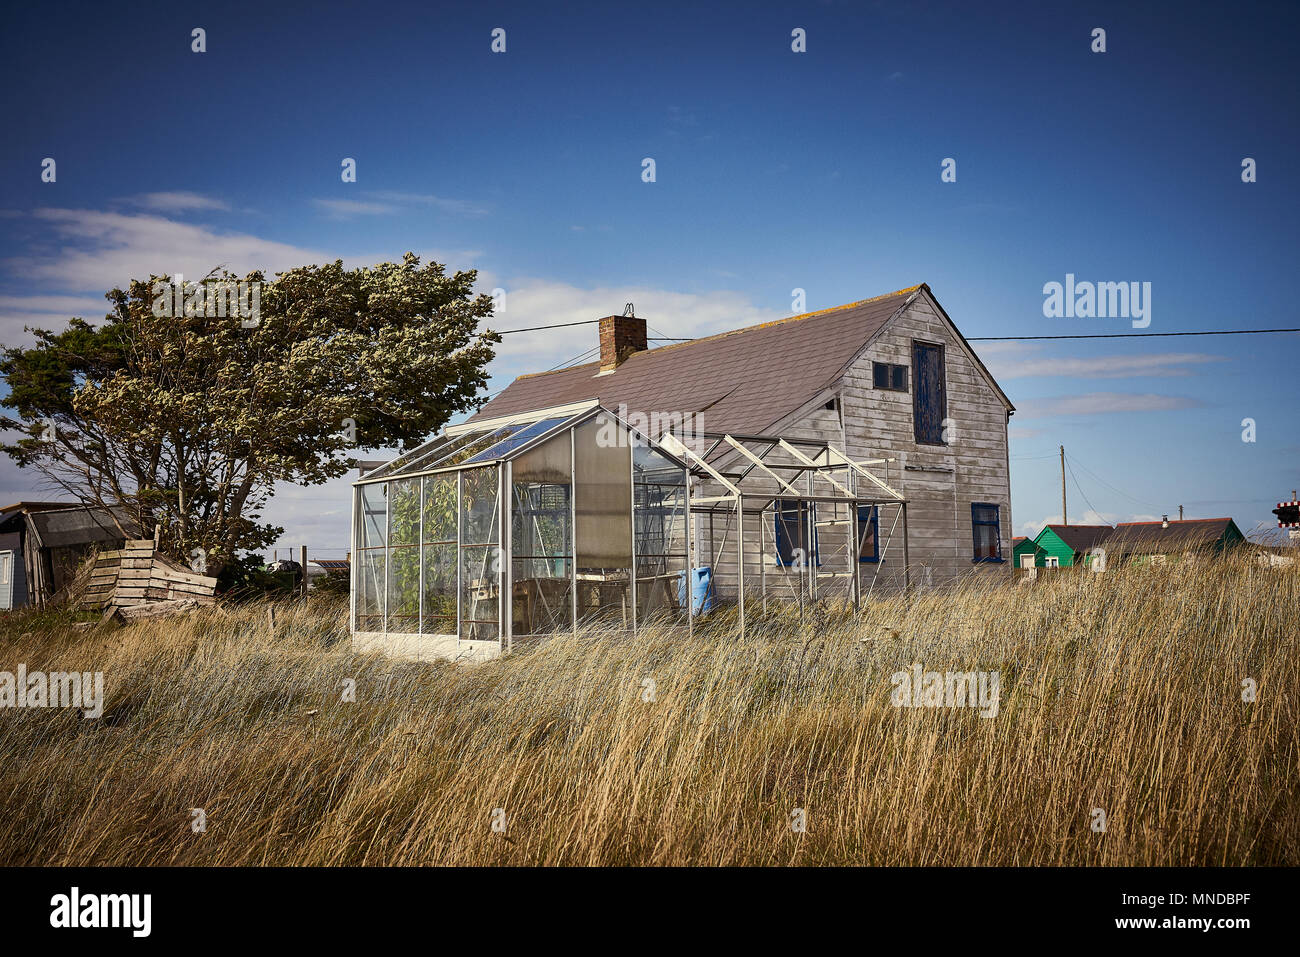 deserted places - Stock Image